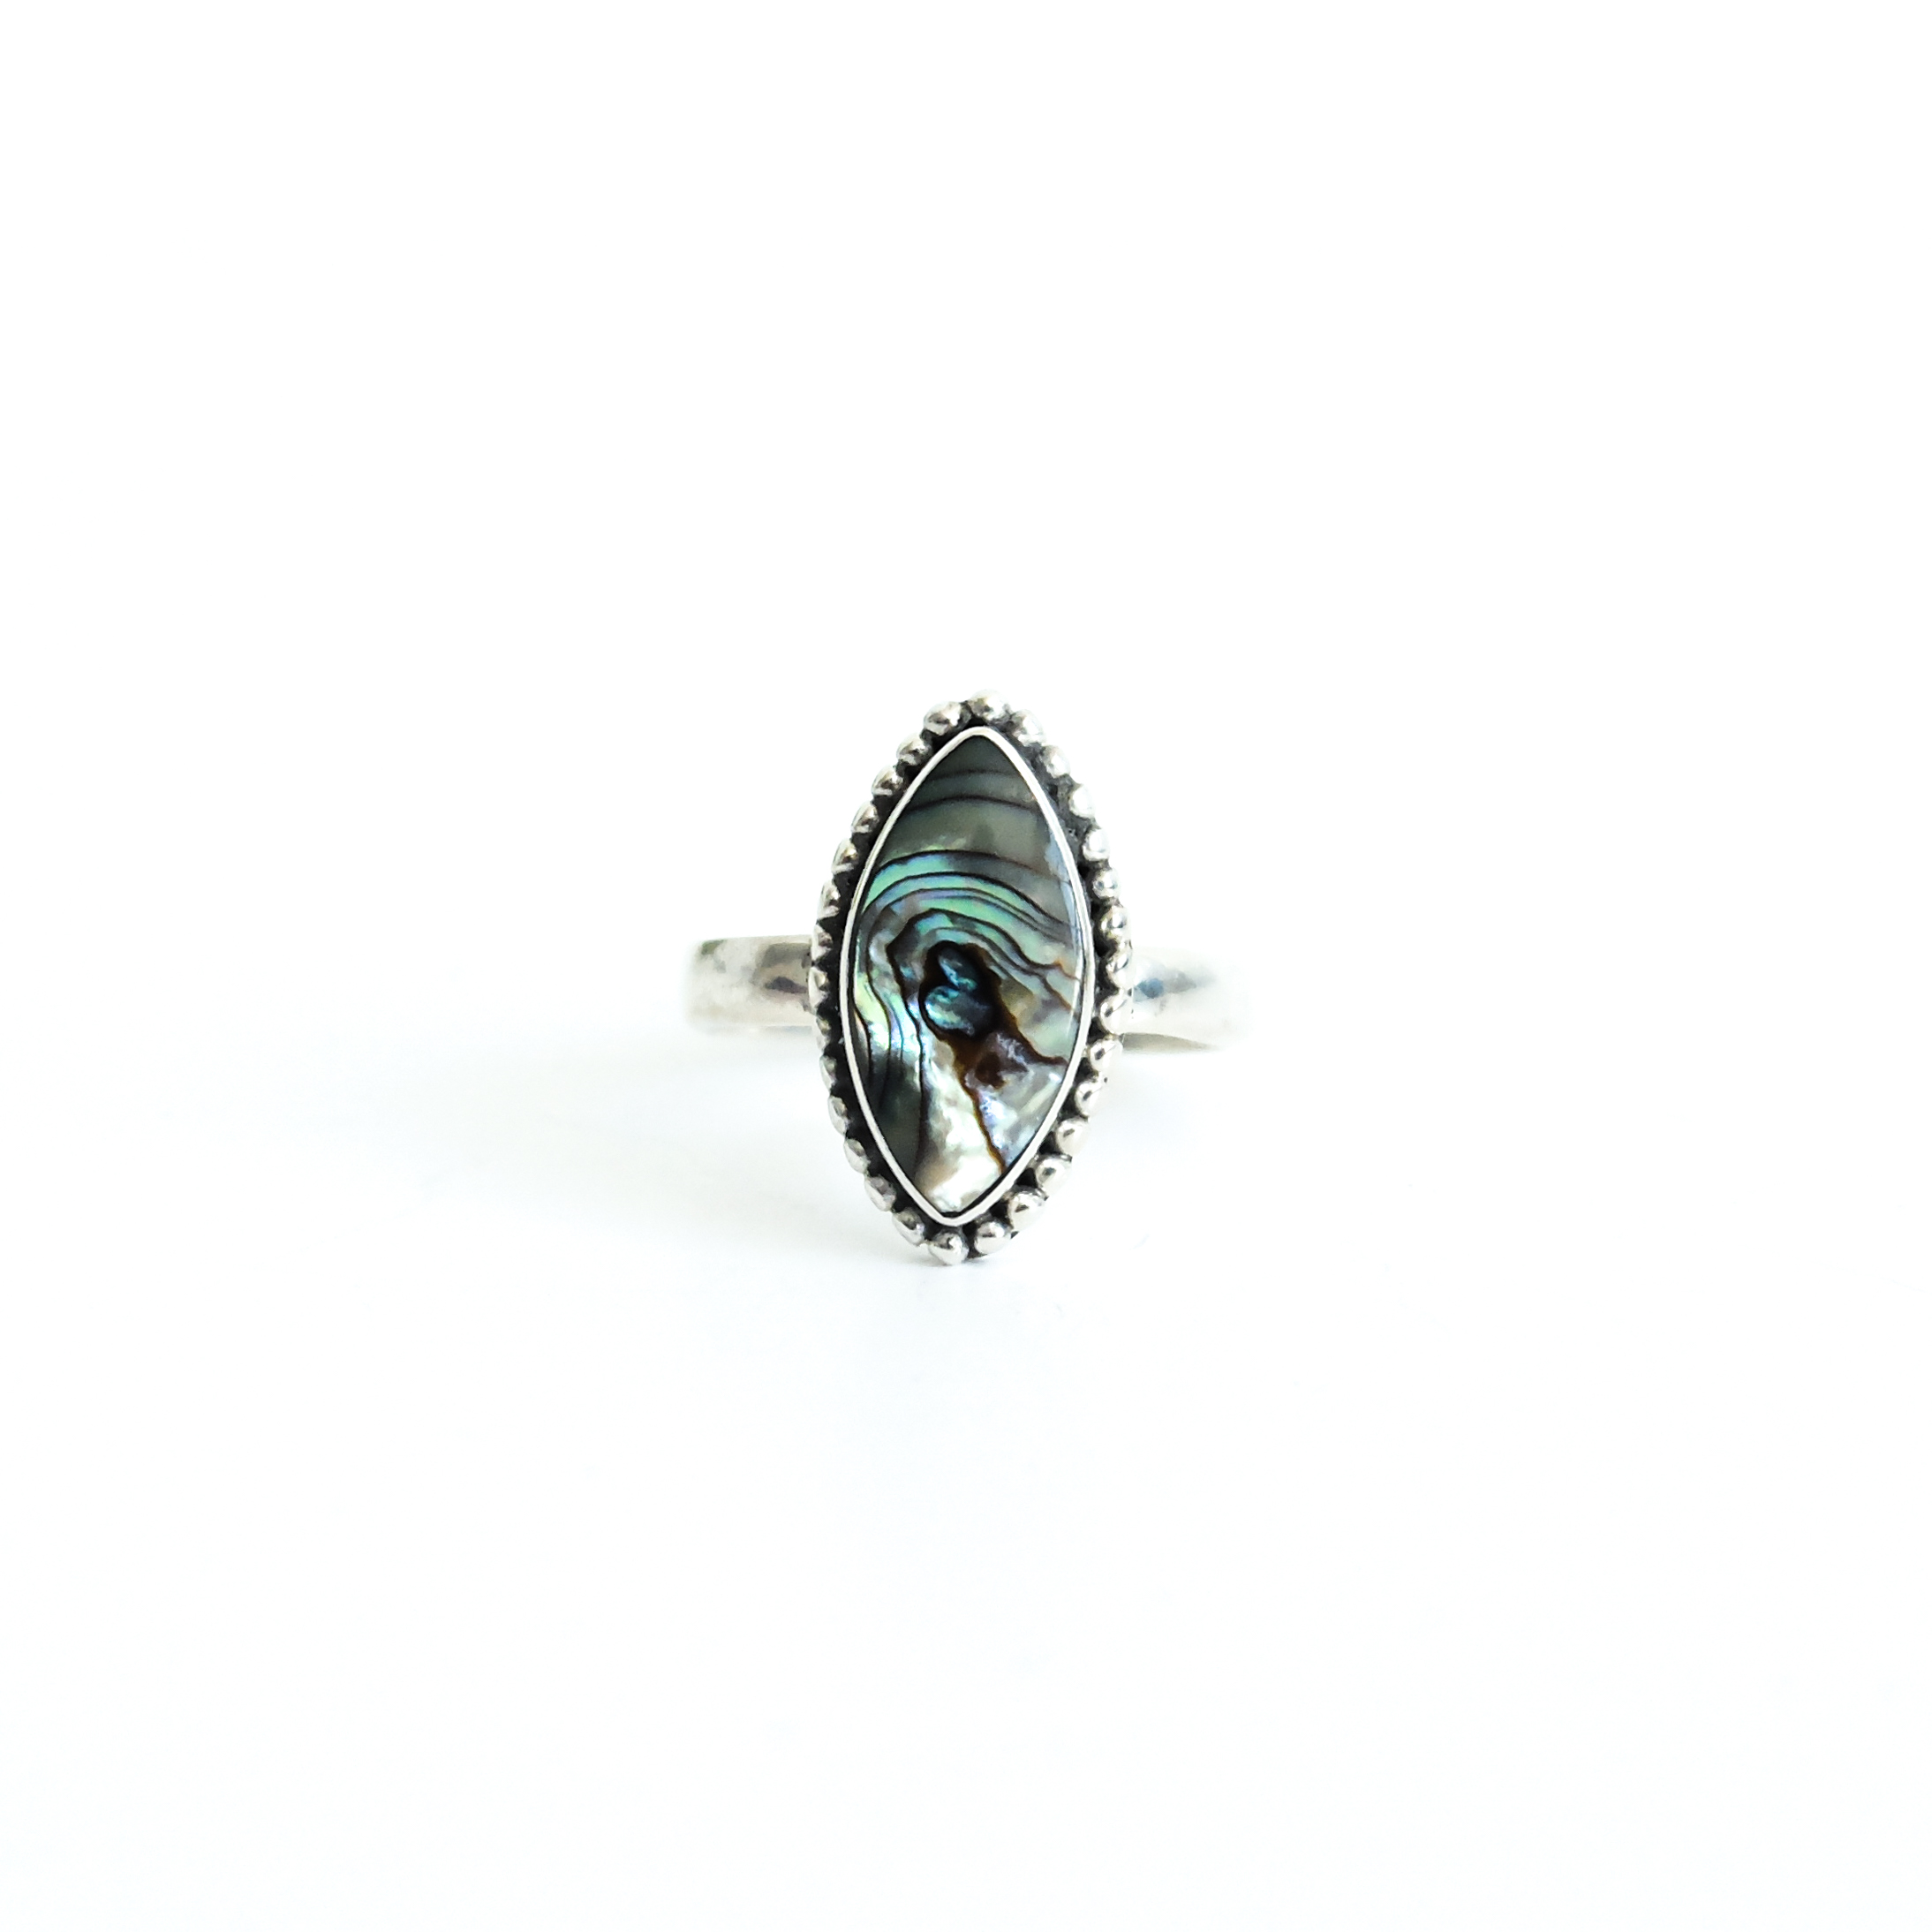 abalone rings silver products crown auld ring teardrop jewelry melanie engagement